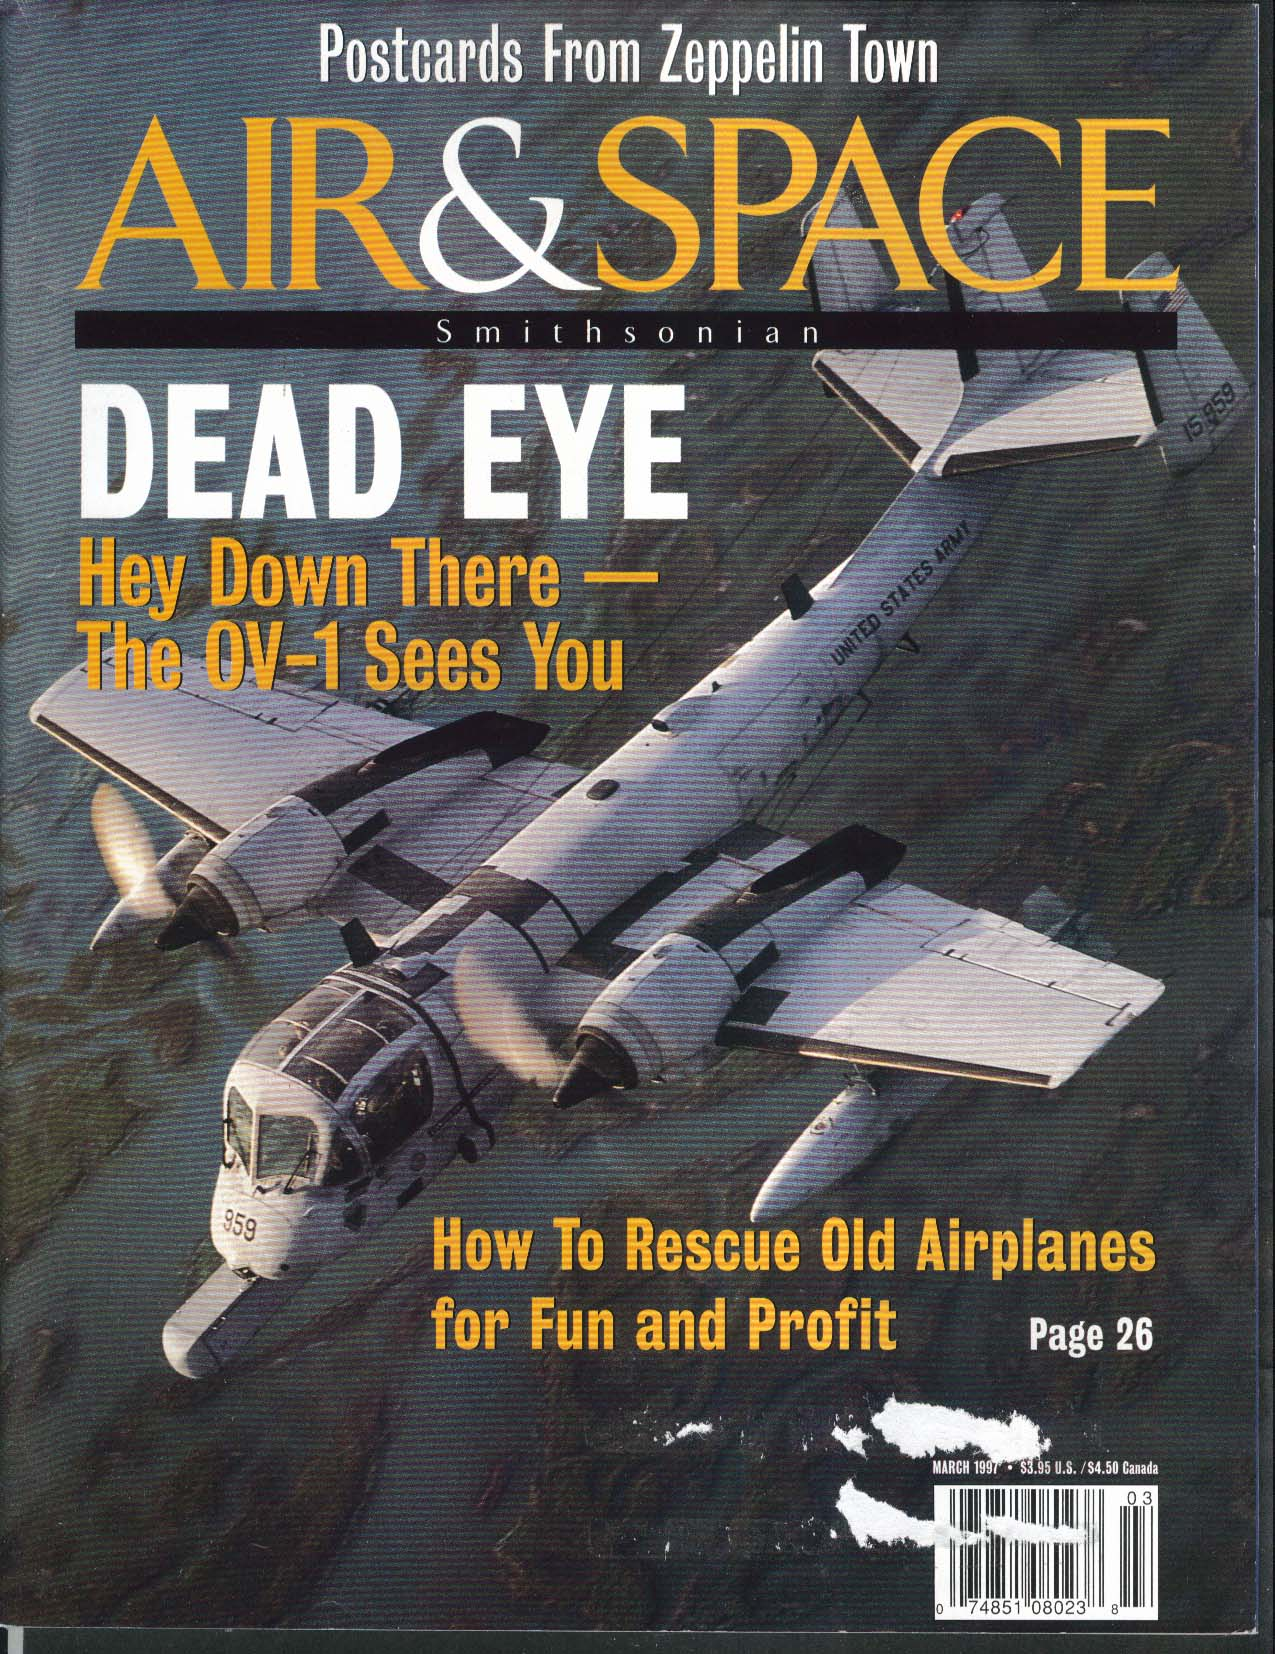 AIR & SPACE Smithsonian OV-1 Gary Larkins Vandenberg Space Launch Complex 3 1997